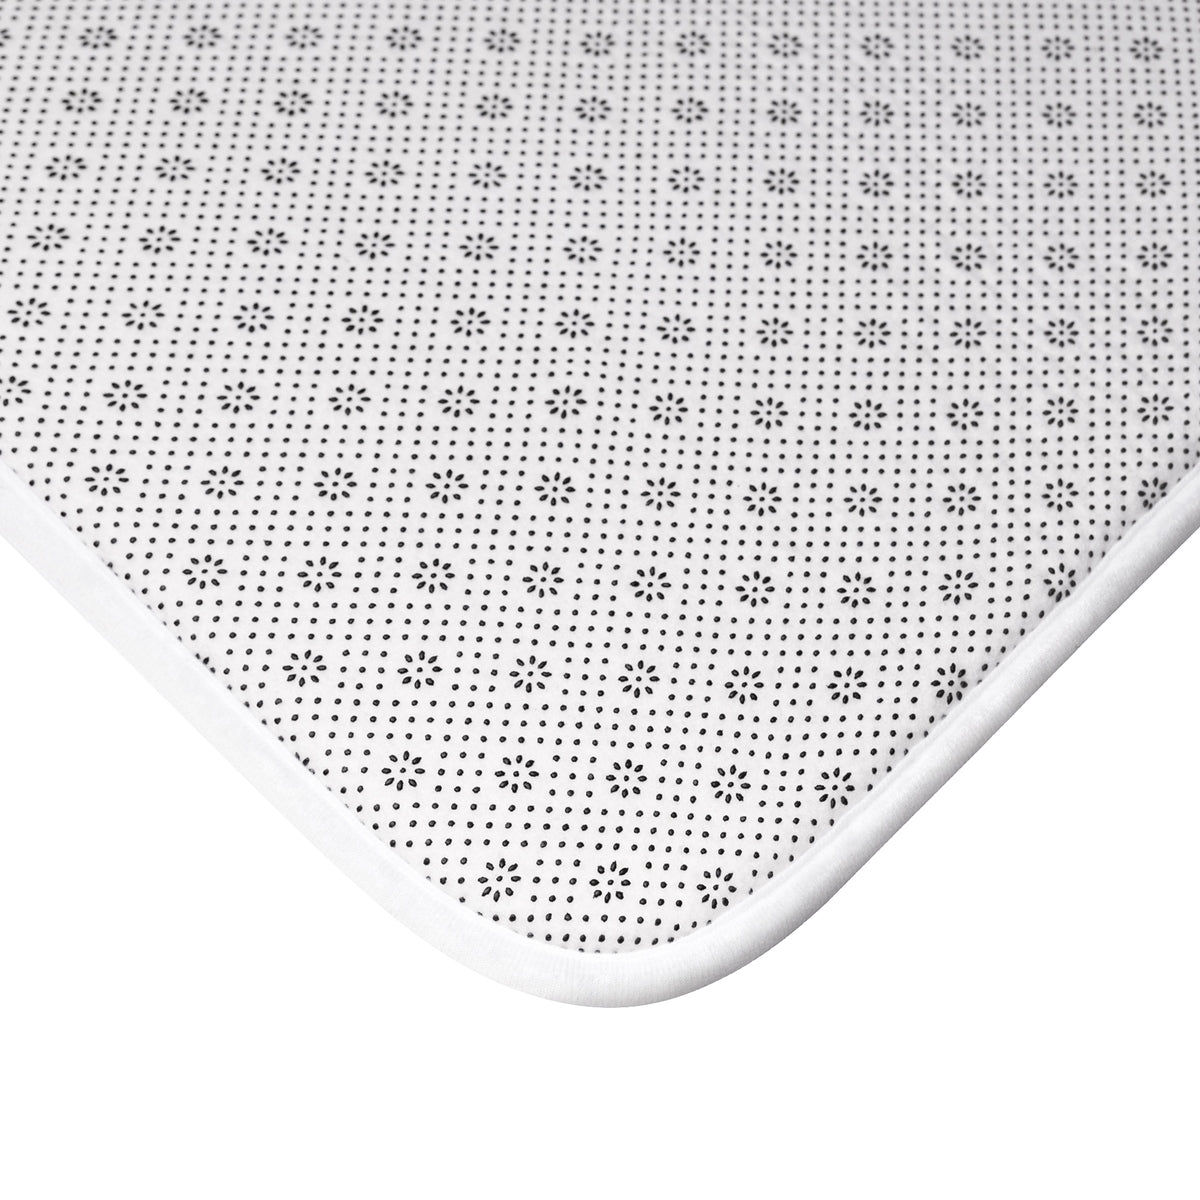 black and white, the back side of bath mat